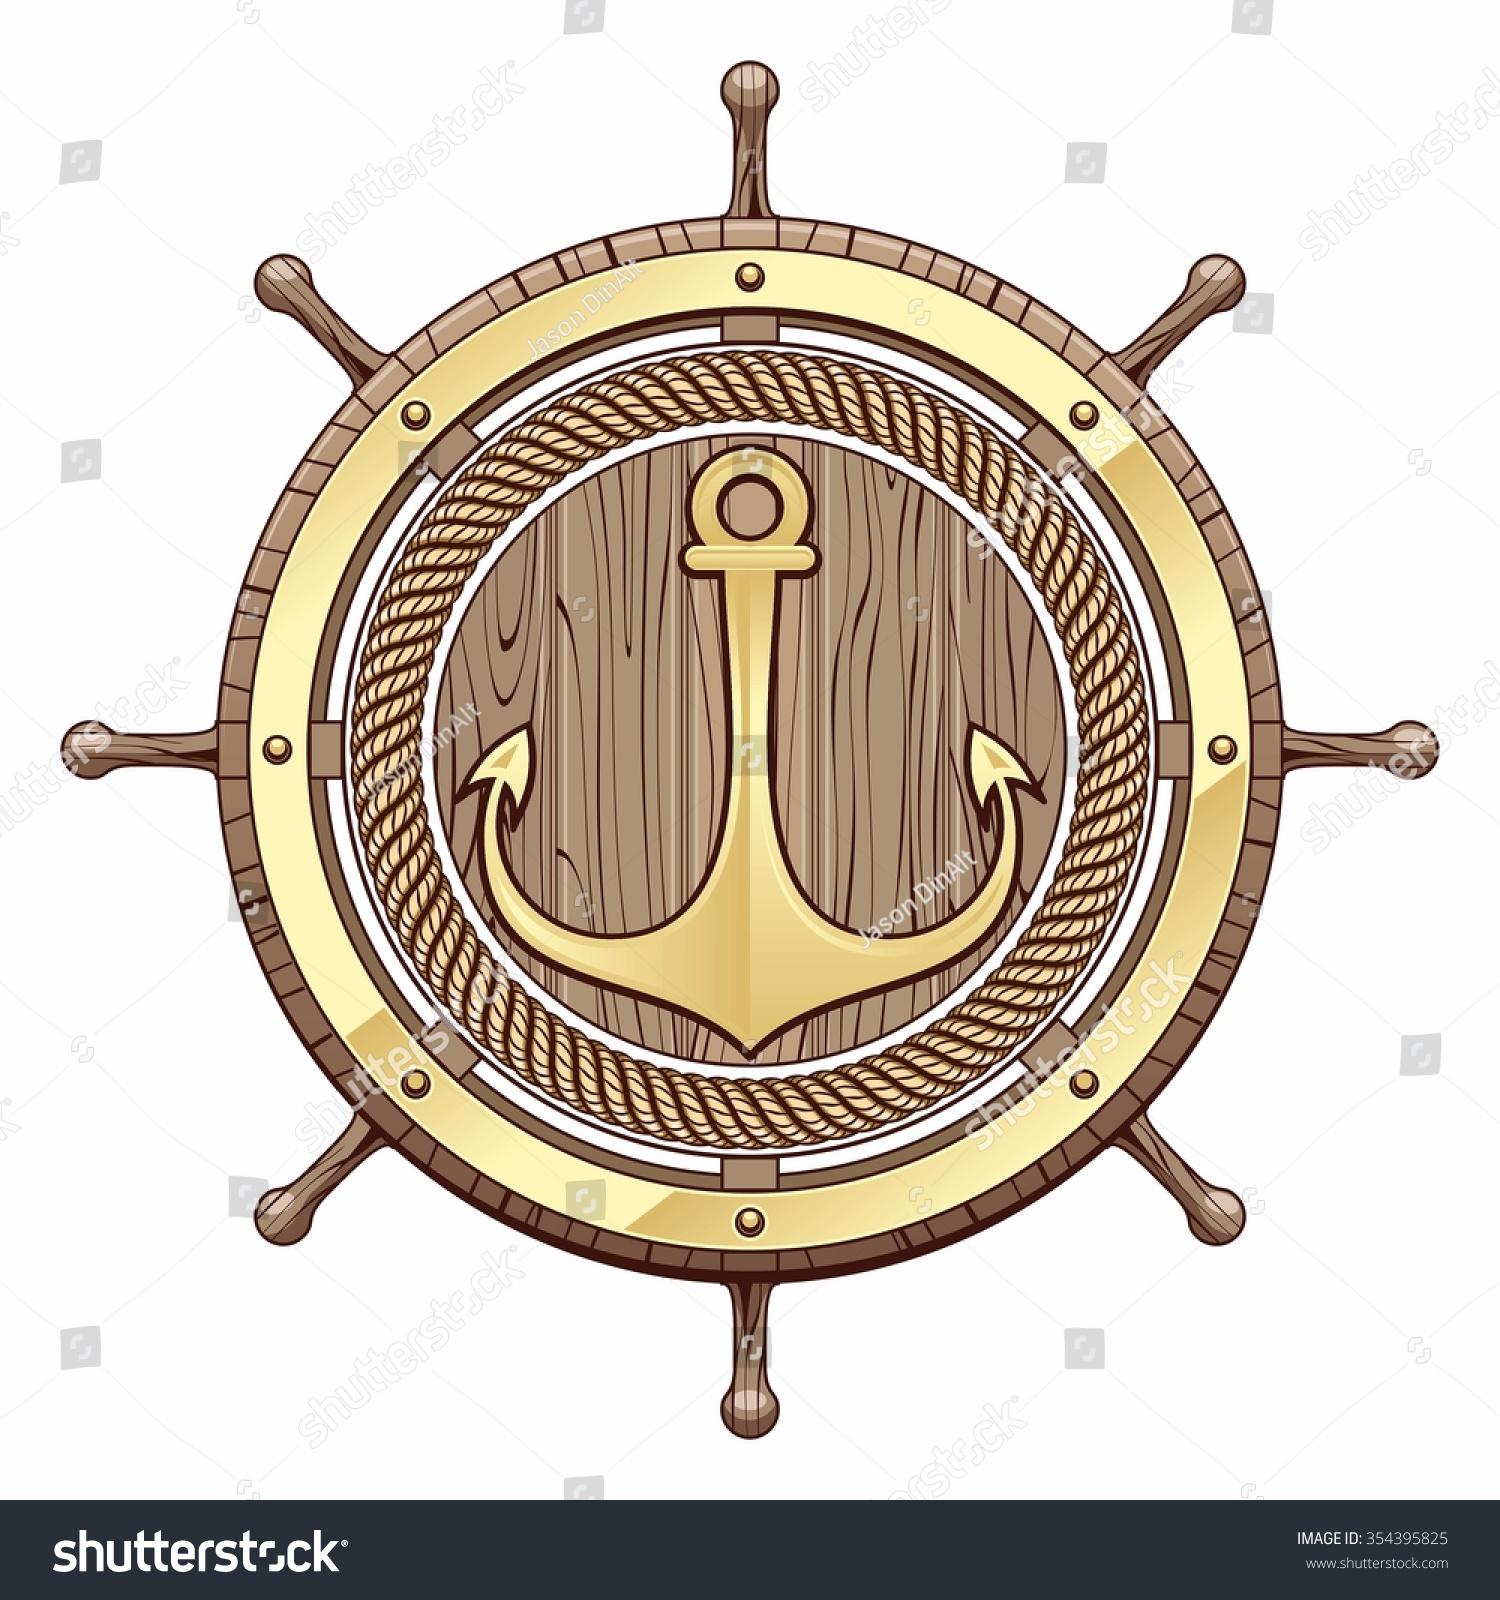 Illustration Of Steering Wheel And Gold Anchor